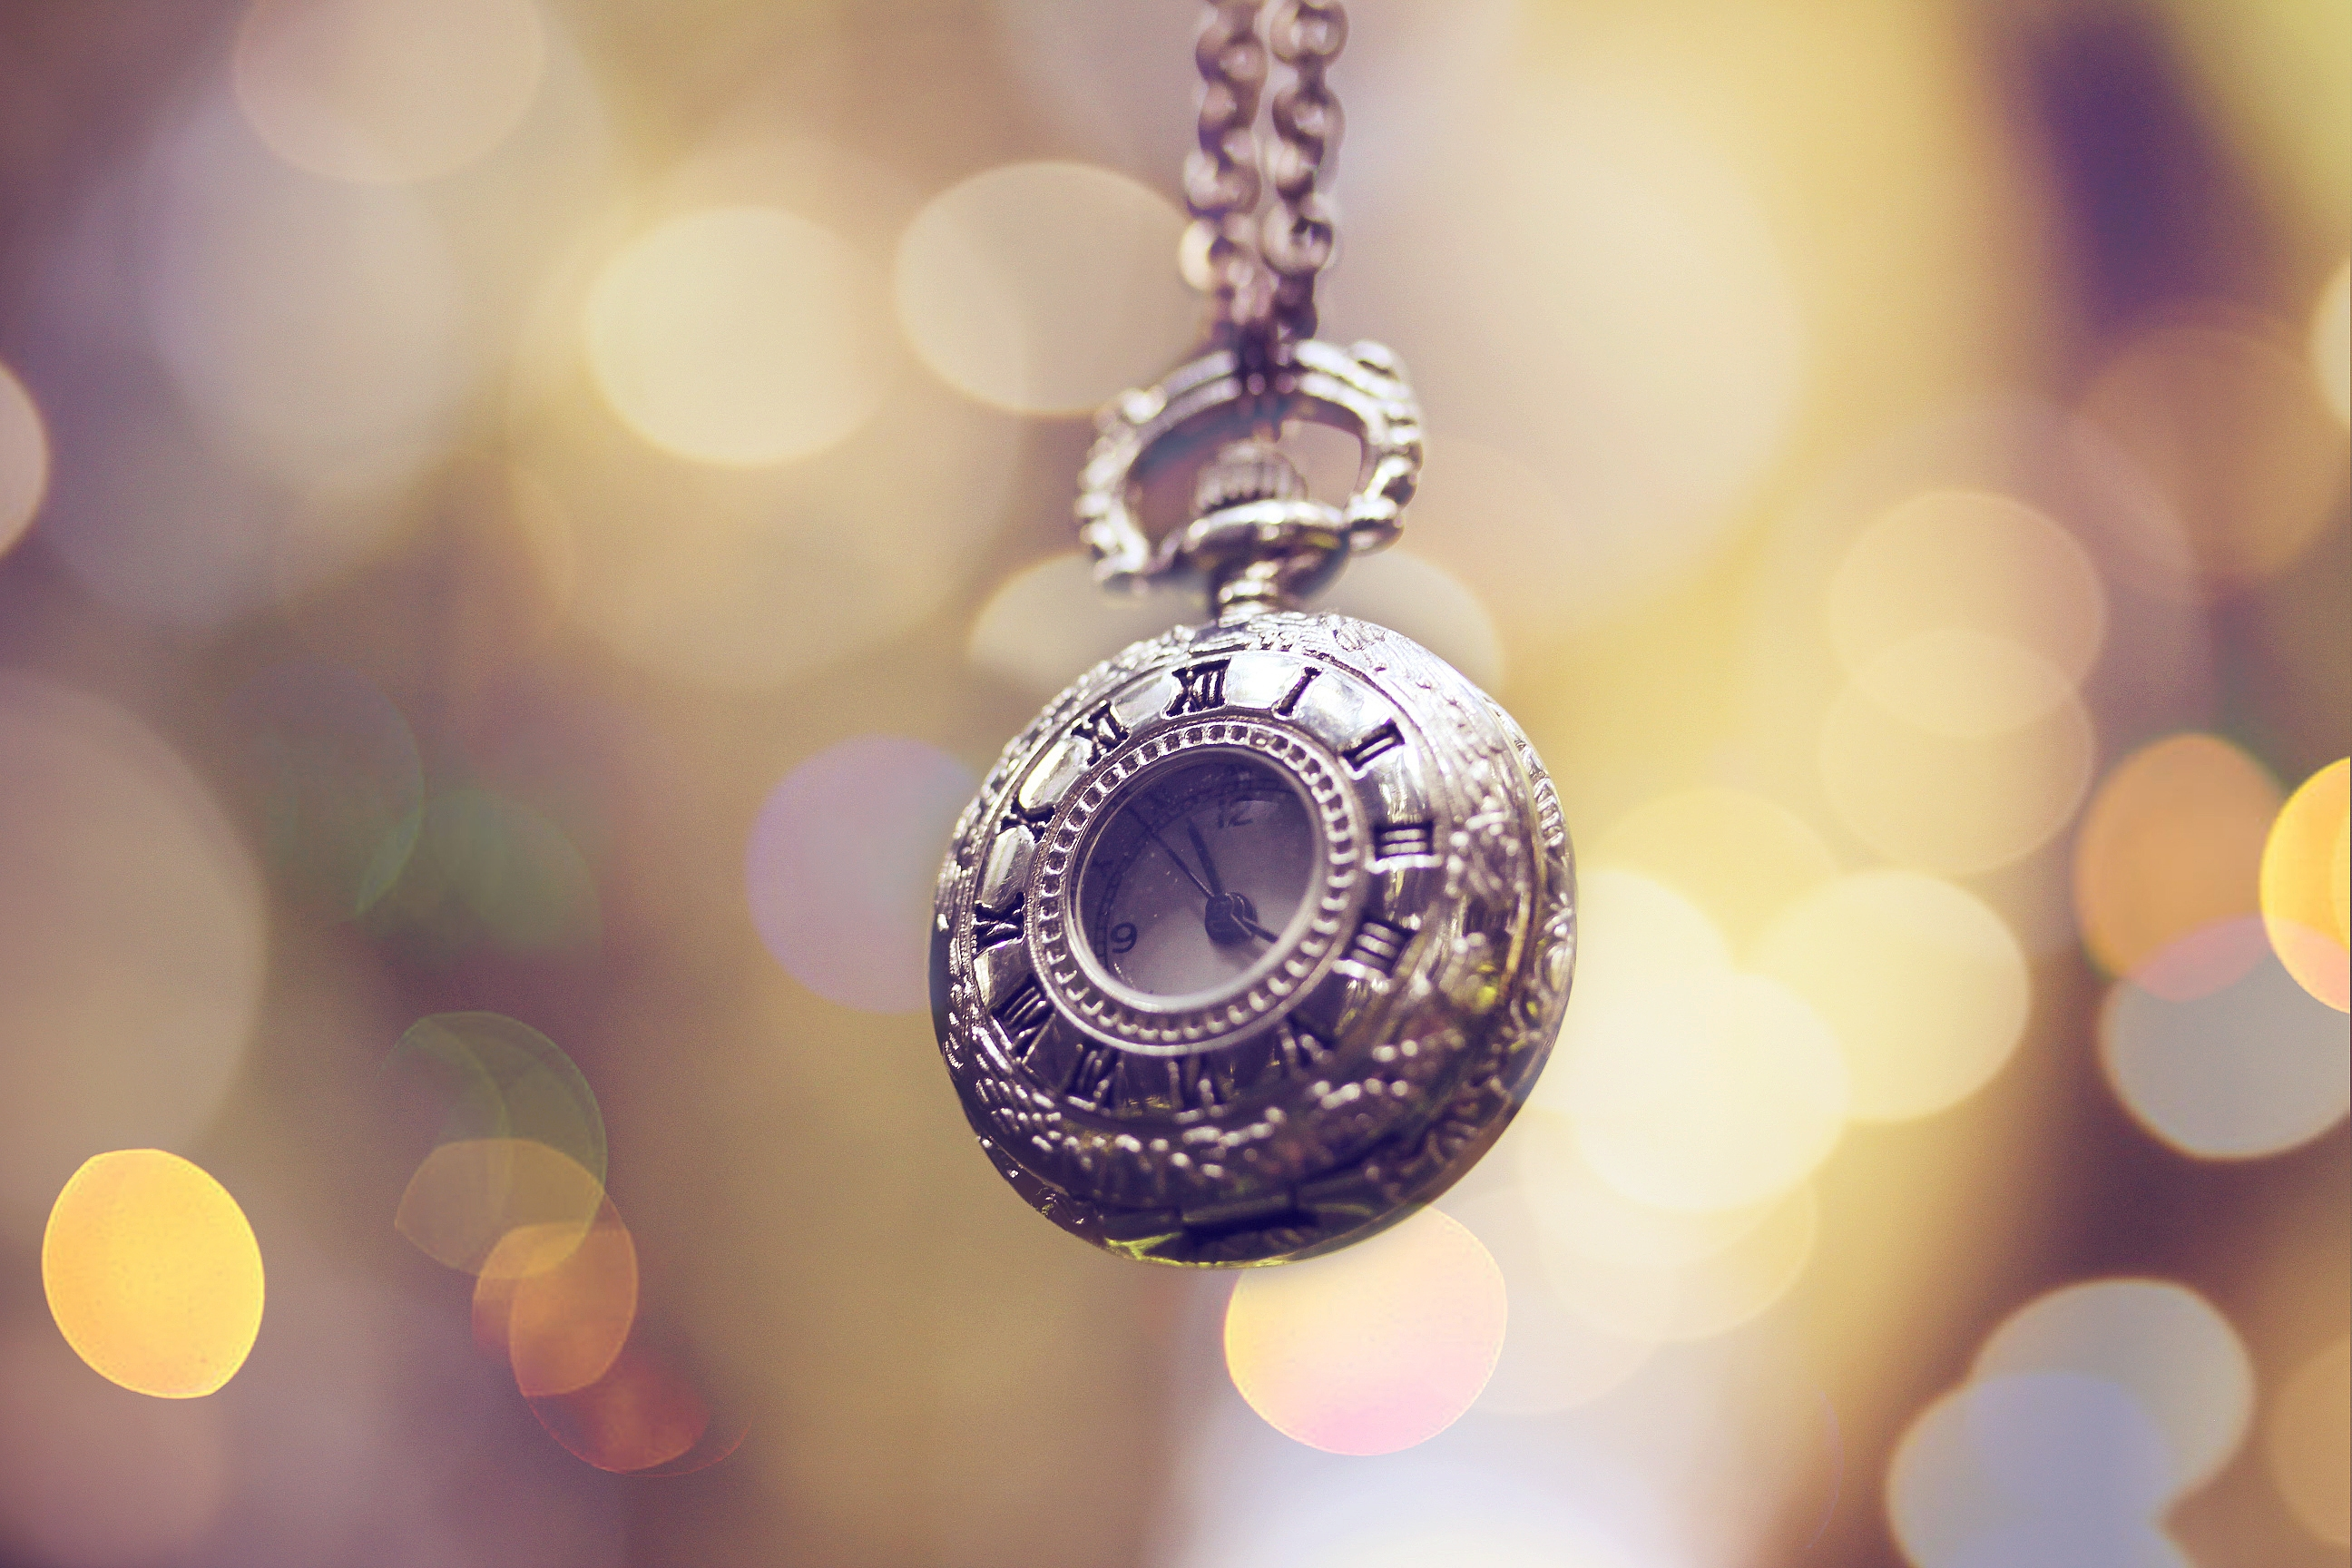 61648 download wallpaper Miscellanea, Miscellaneous, Pocket Watch, Chain, Decoration, Glare screensavers and pictures for free